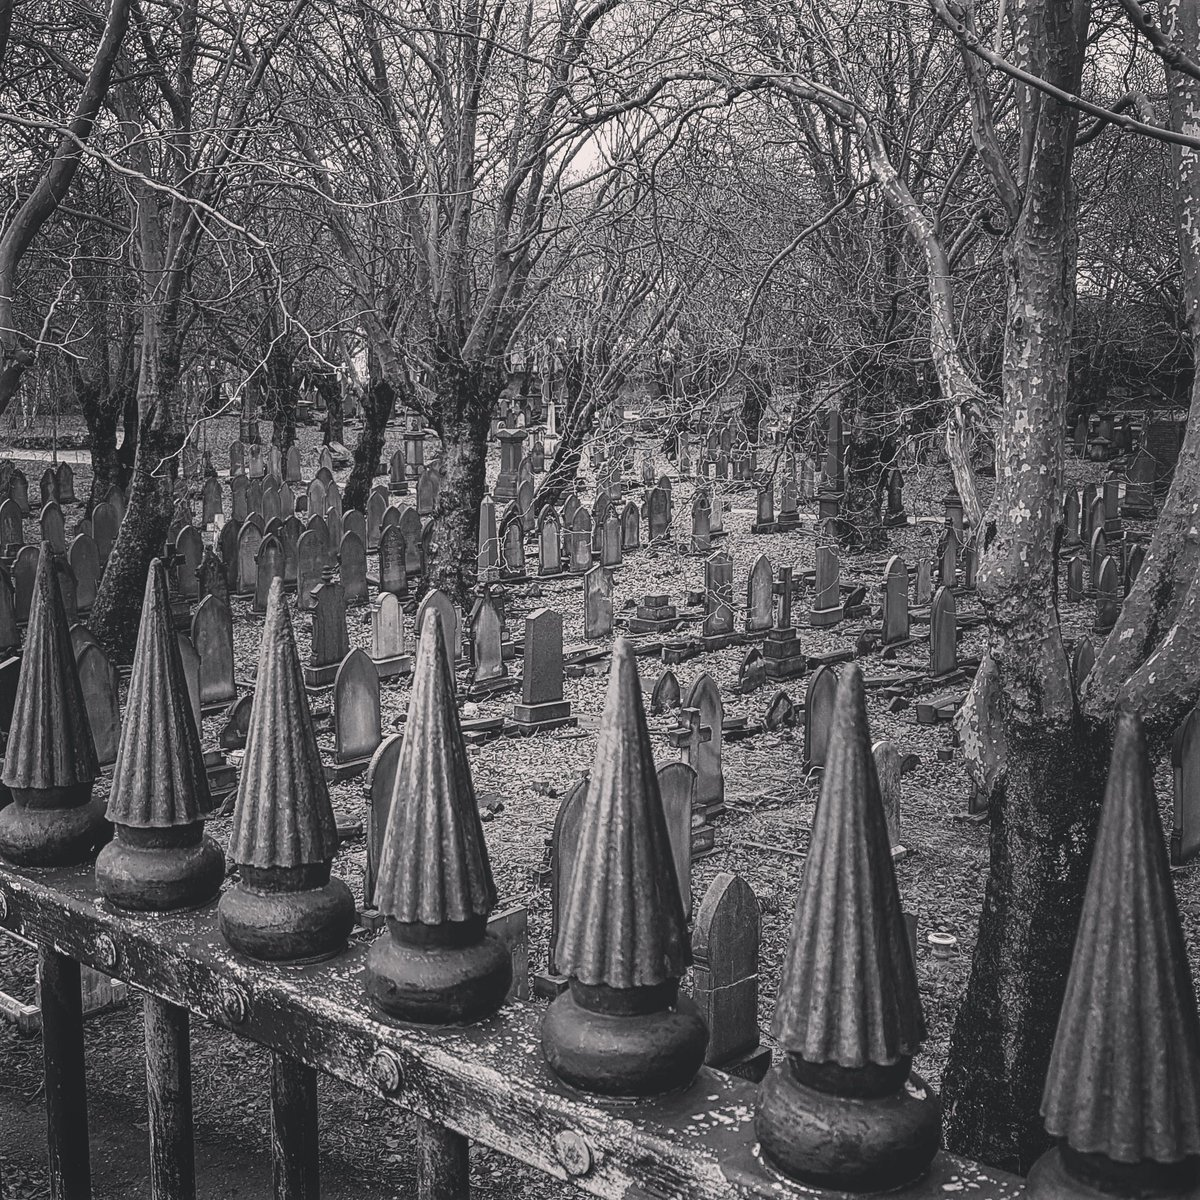 Exeunt.  (The commute scenery just got a lot more interesting) #birmingham #cemetery #graveyard #thisistheend #gothic #photography #morningcommute #thisisbirmingham #newhome